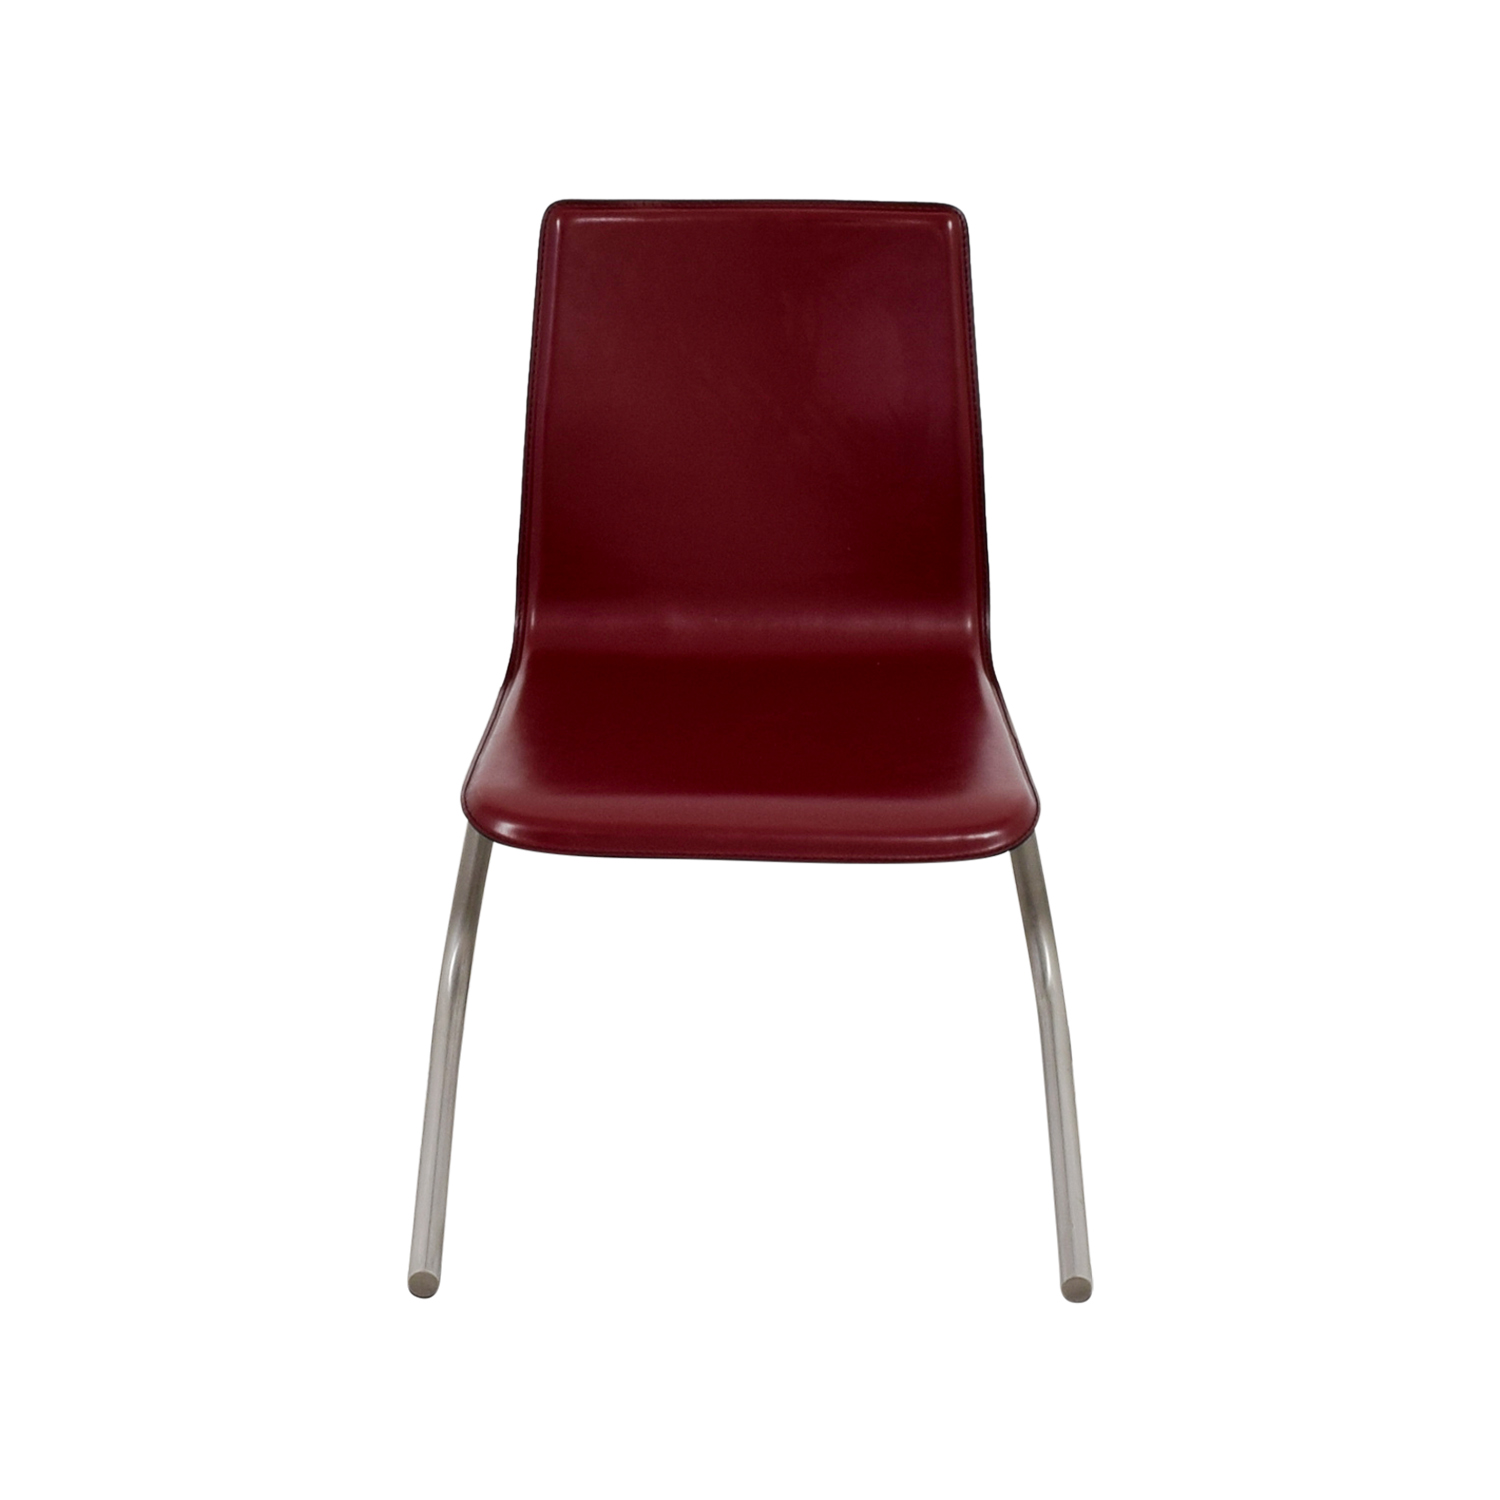 ... Frighetto Industries Frighetto Industries Modern Red Faux Leather Chair  Dimensions ...